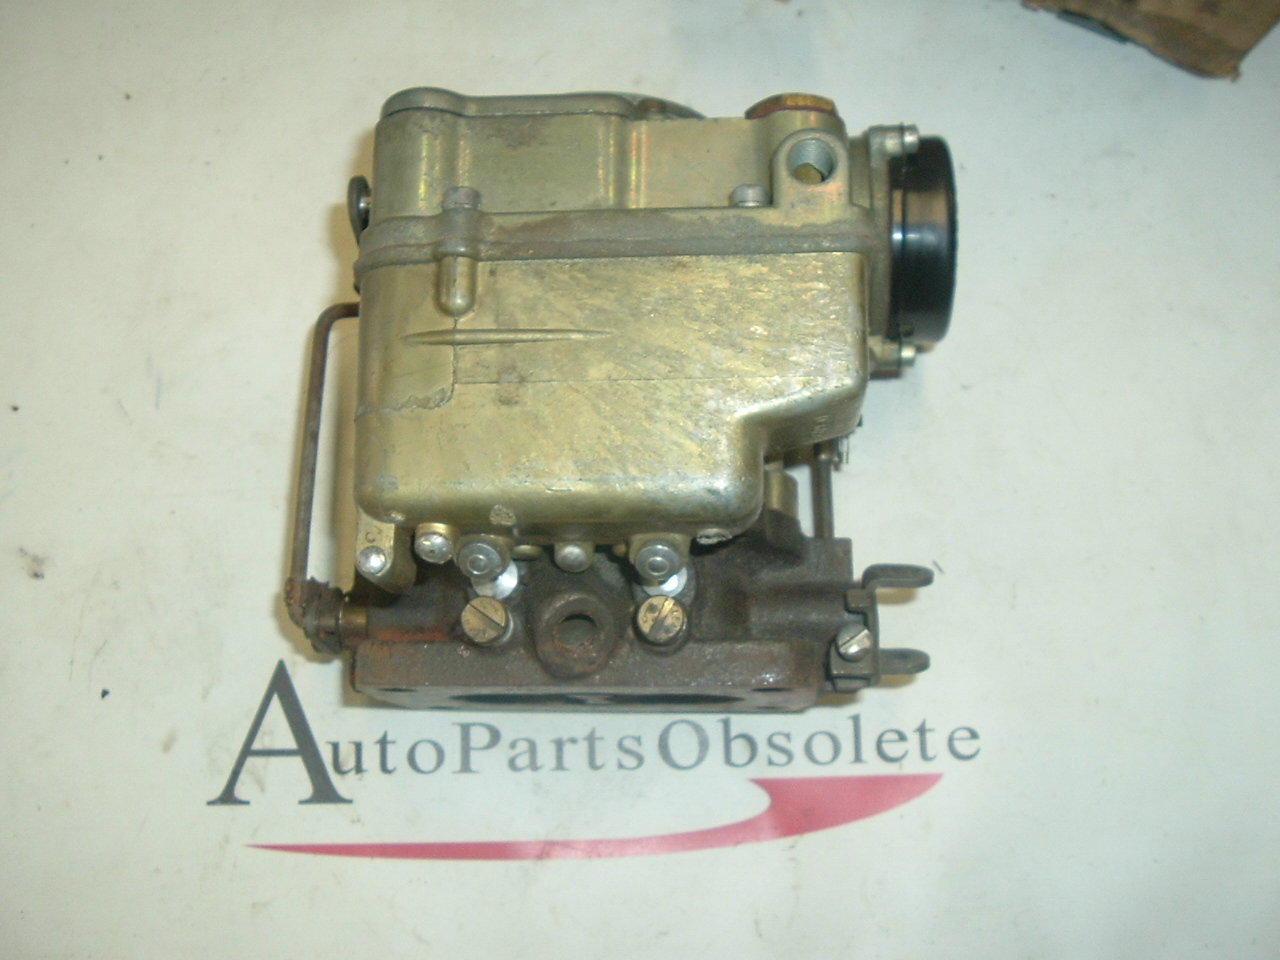 View Product1951 Kaiser f515 f516 new 2bbl carburetor (A 813s carter)